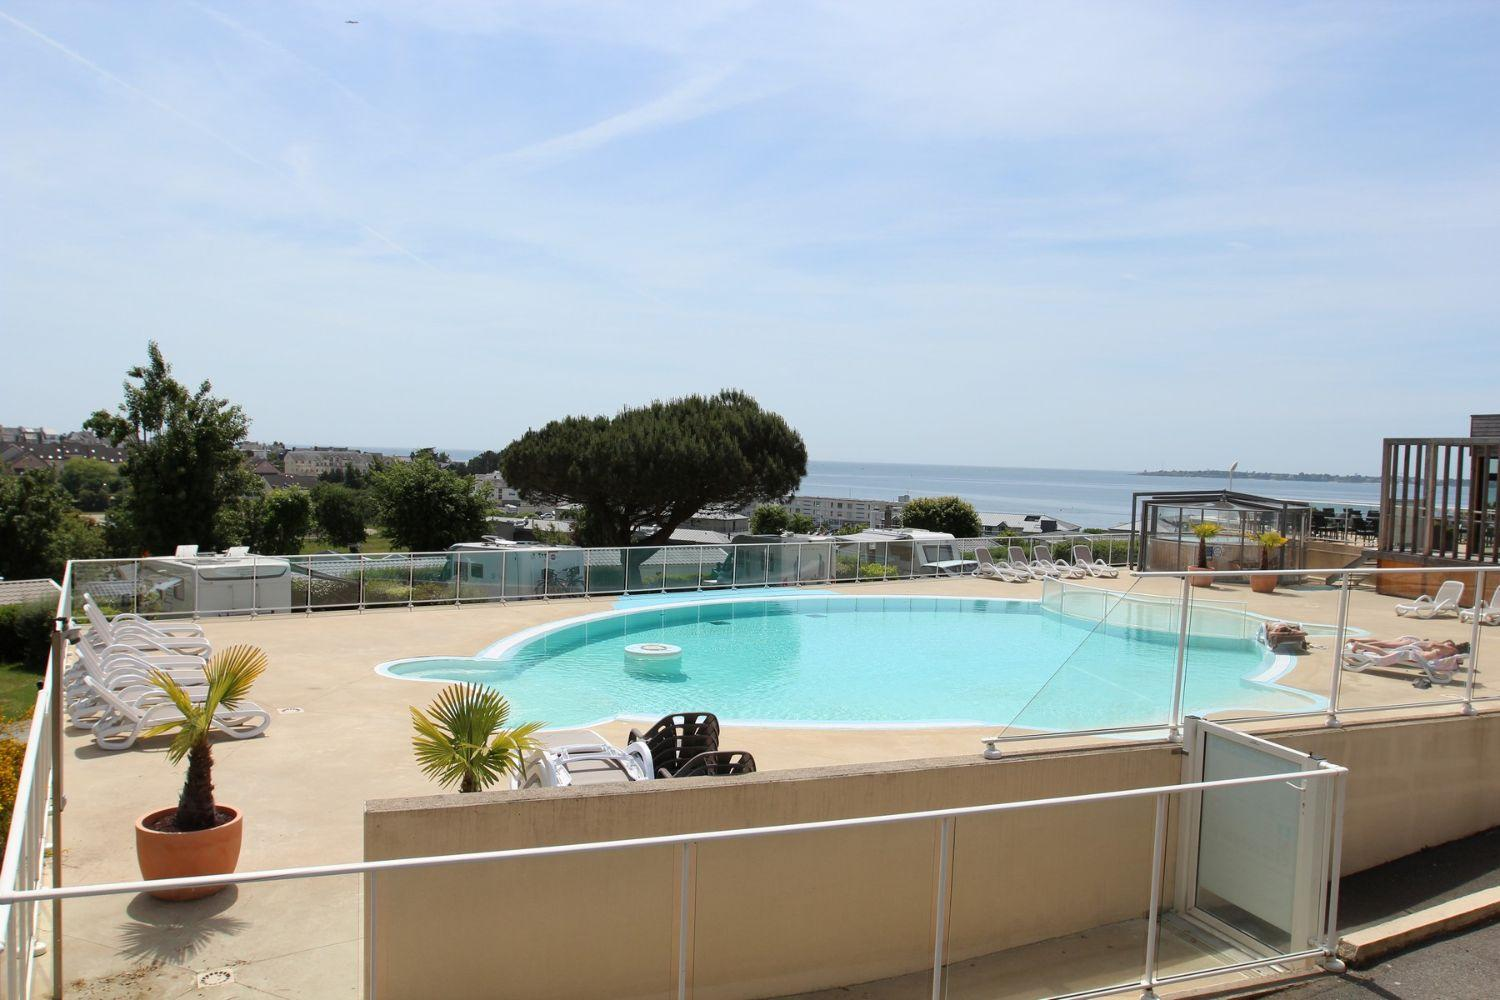 Camping finist re sud piscine chauff e les sables for Camping concarneau avec piscine